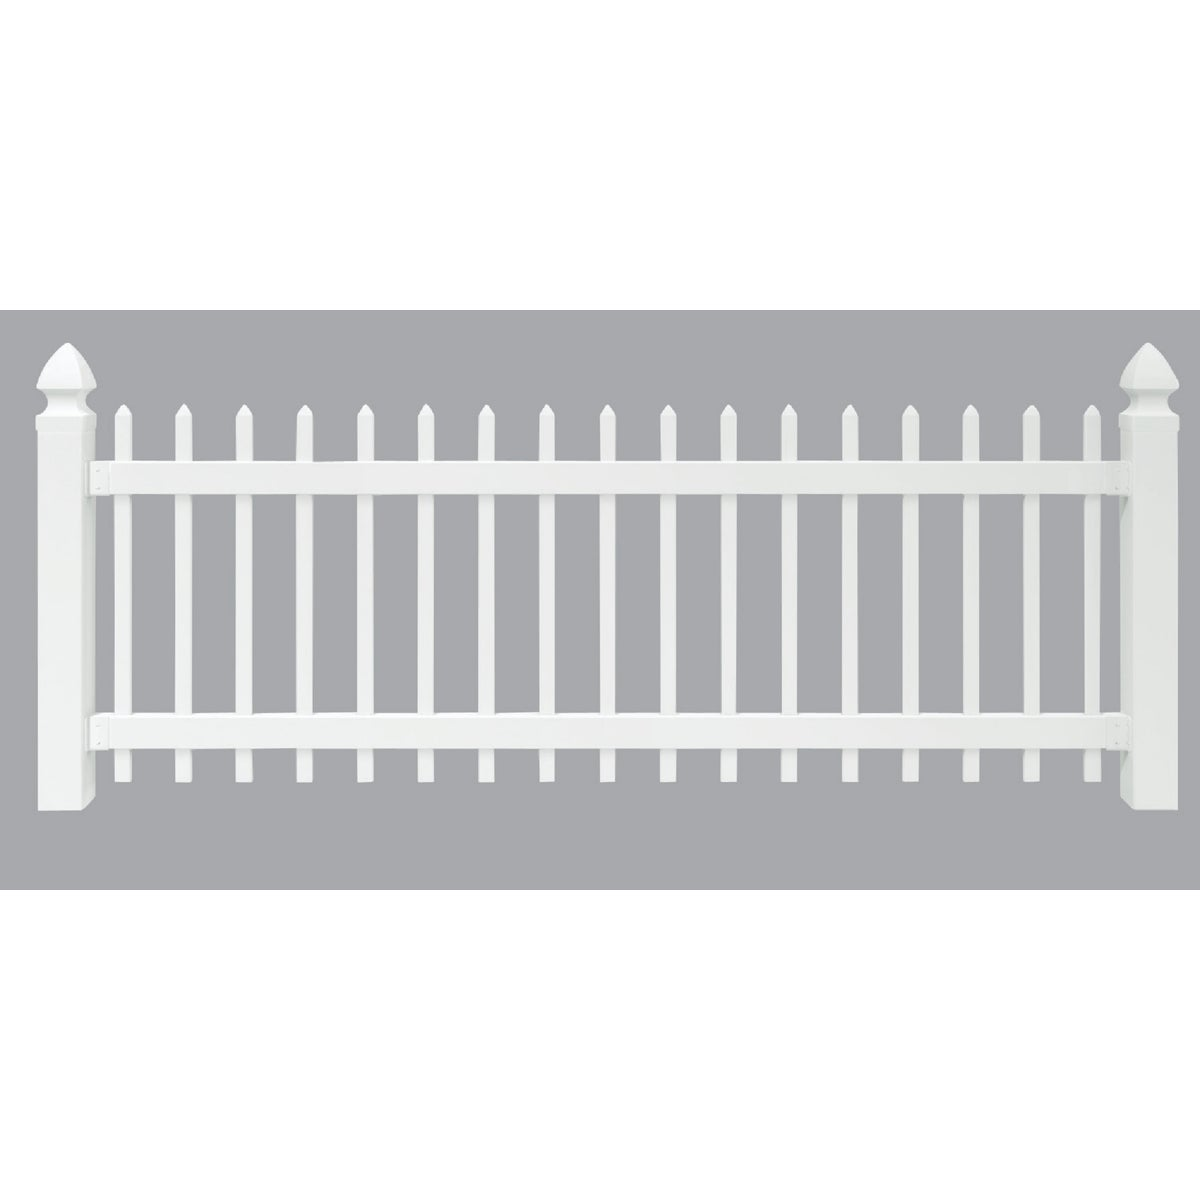 3/8 WH VNYL PICKET FENCE - 128003 by Ufpi Lbr & Treated